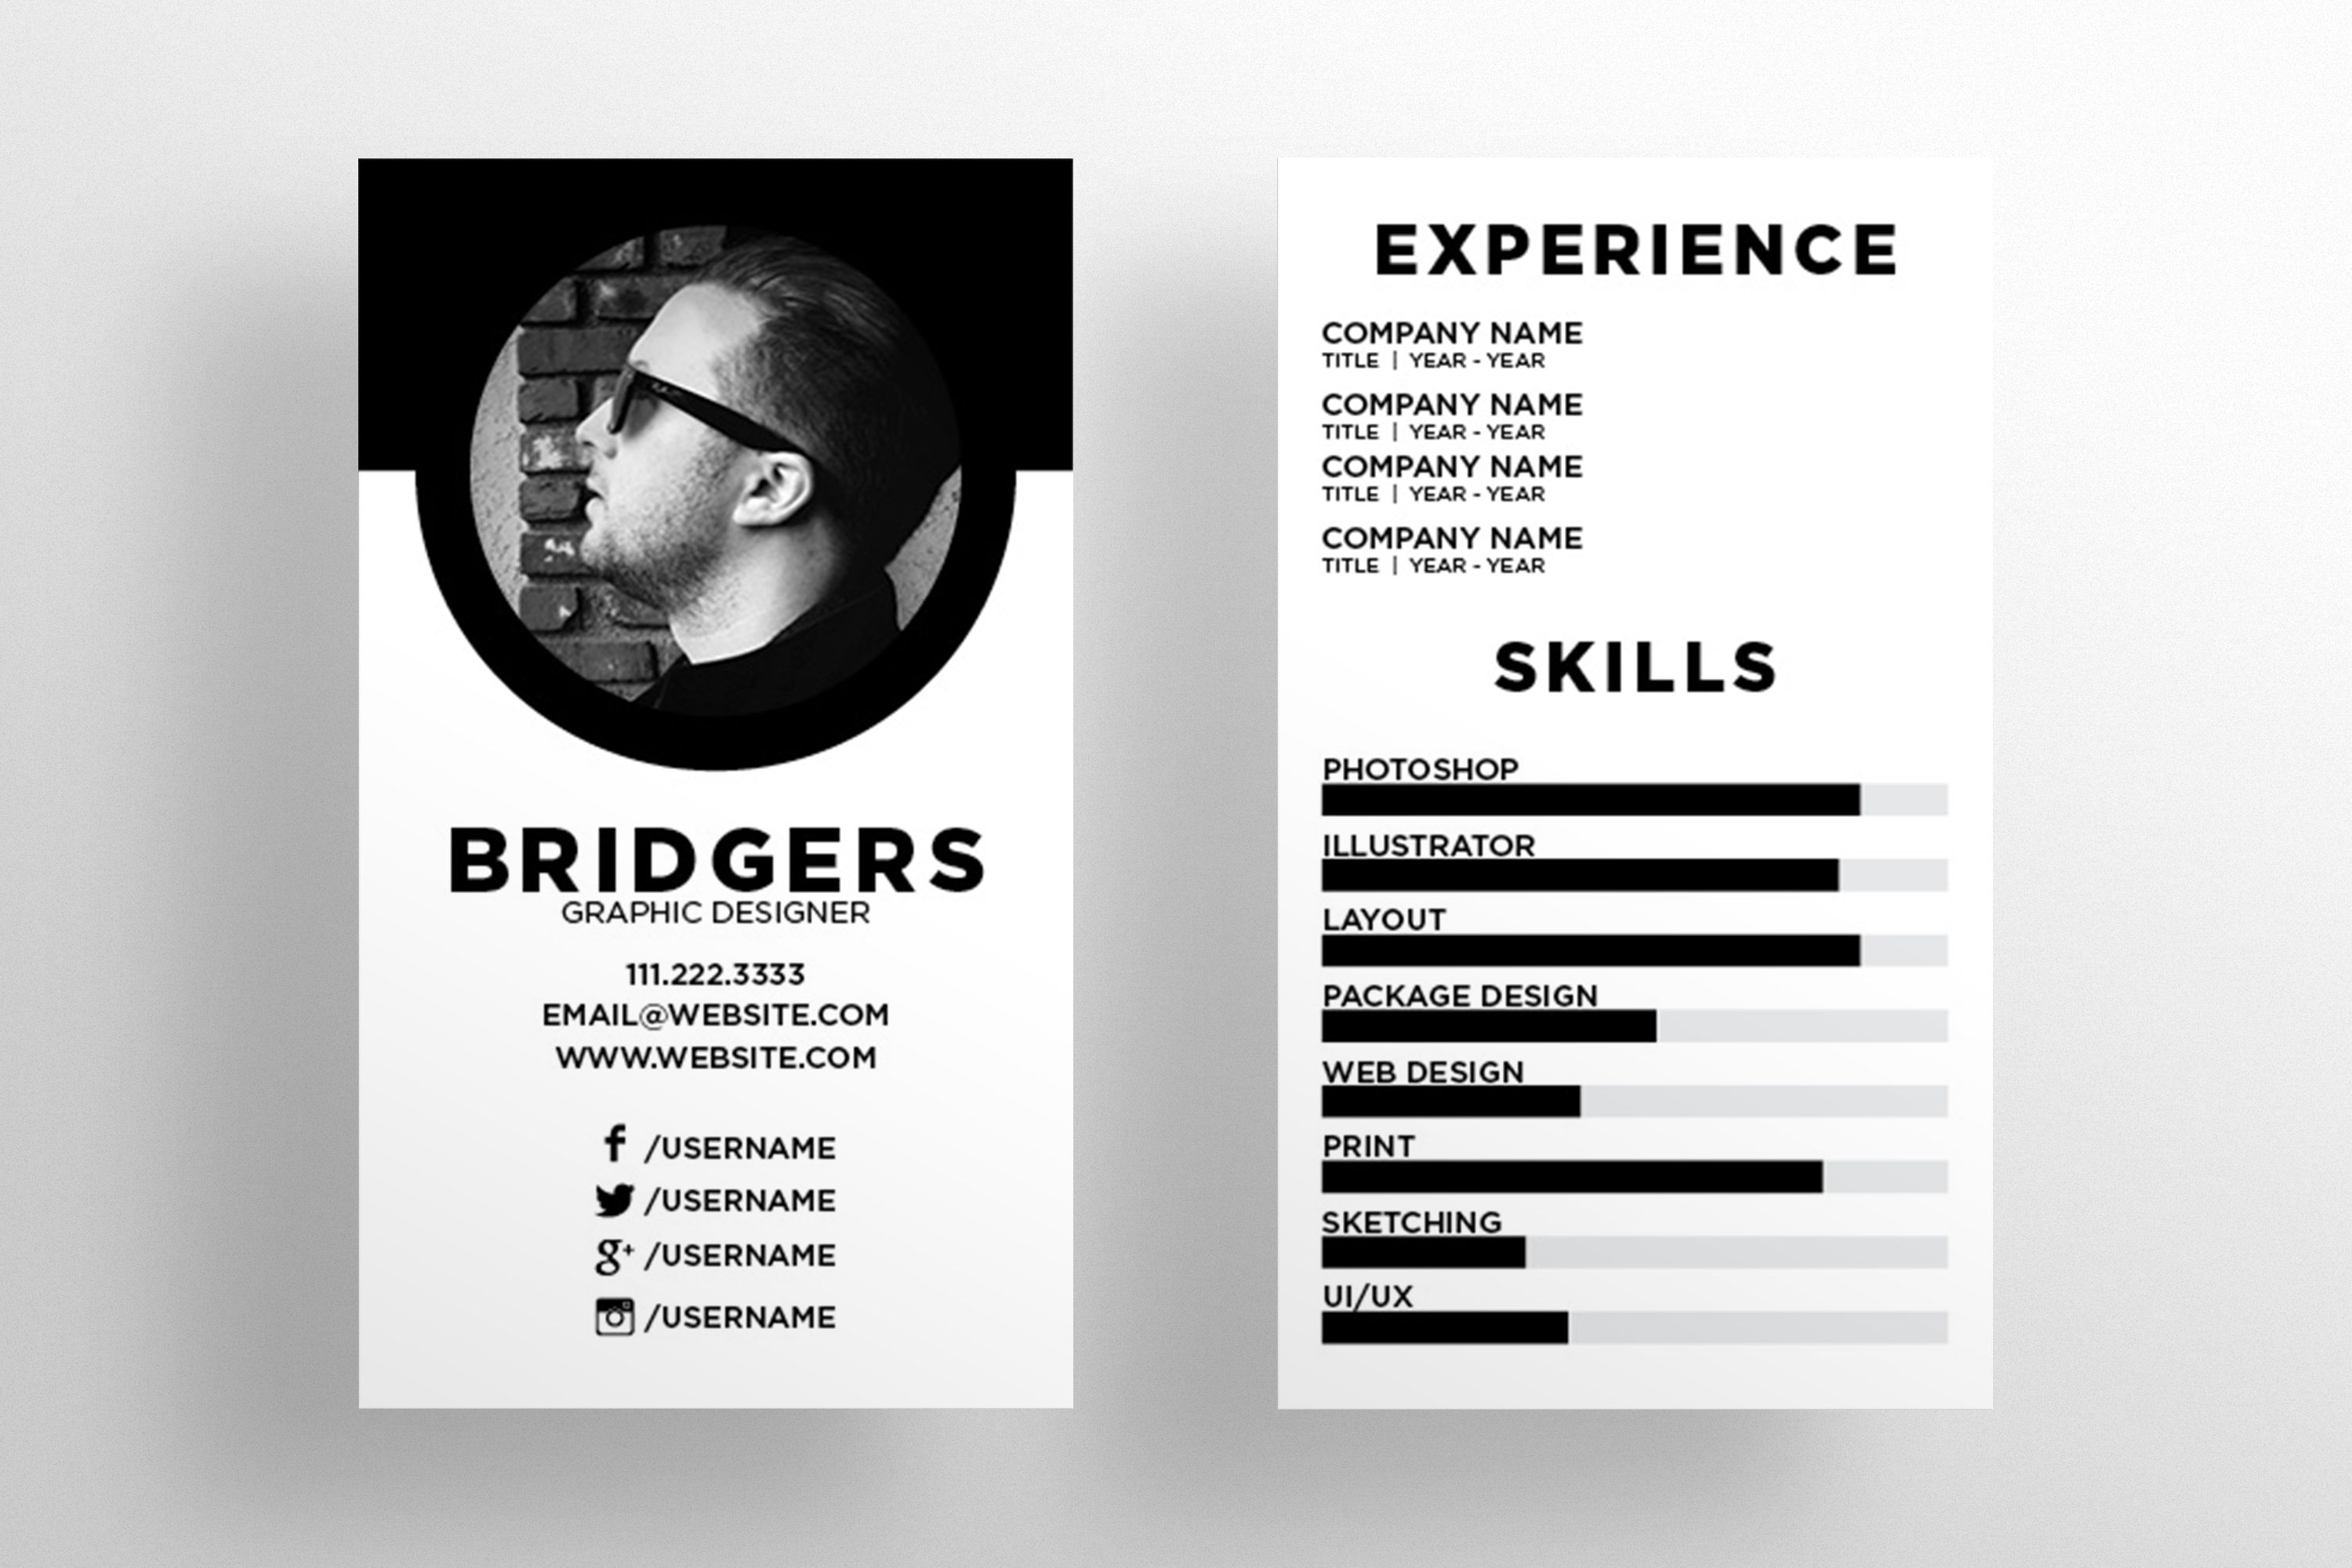 The Resume - Business Card Template | Business cards, Card templates ...